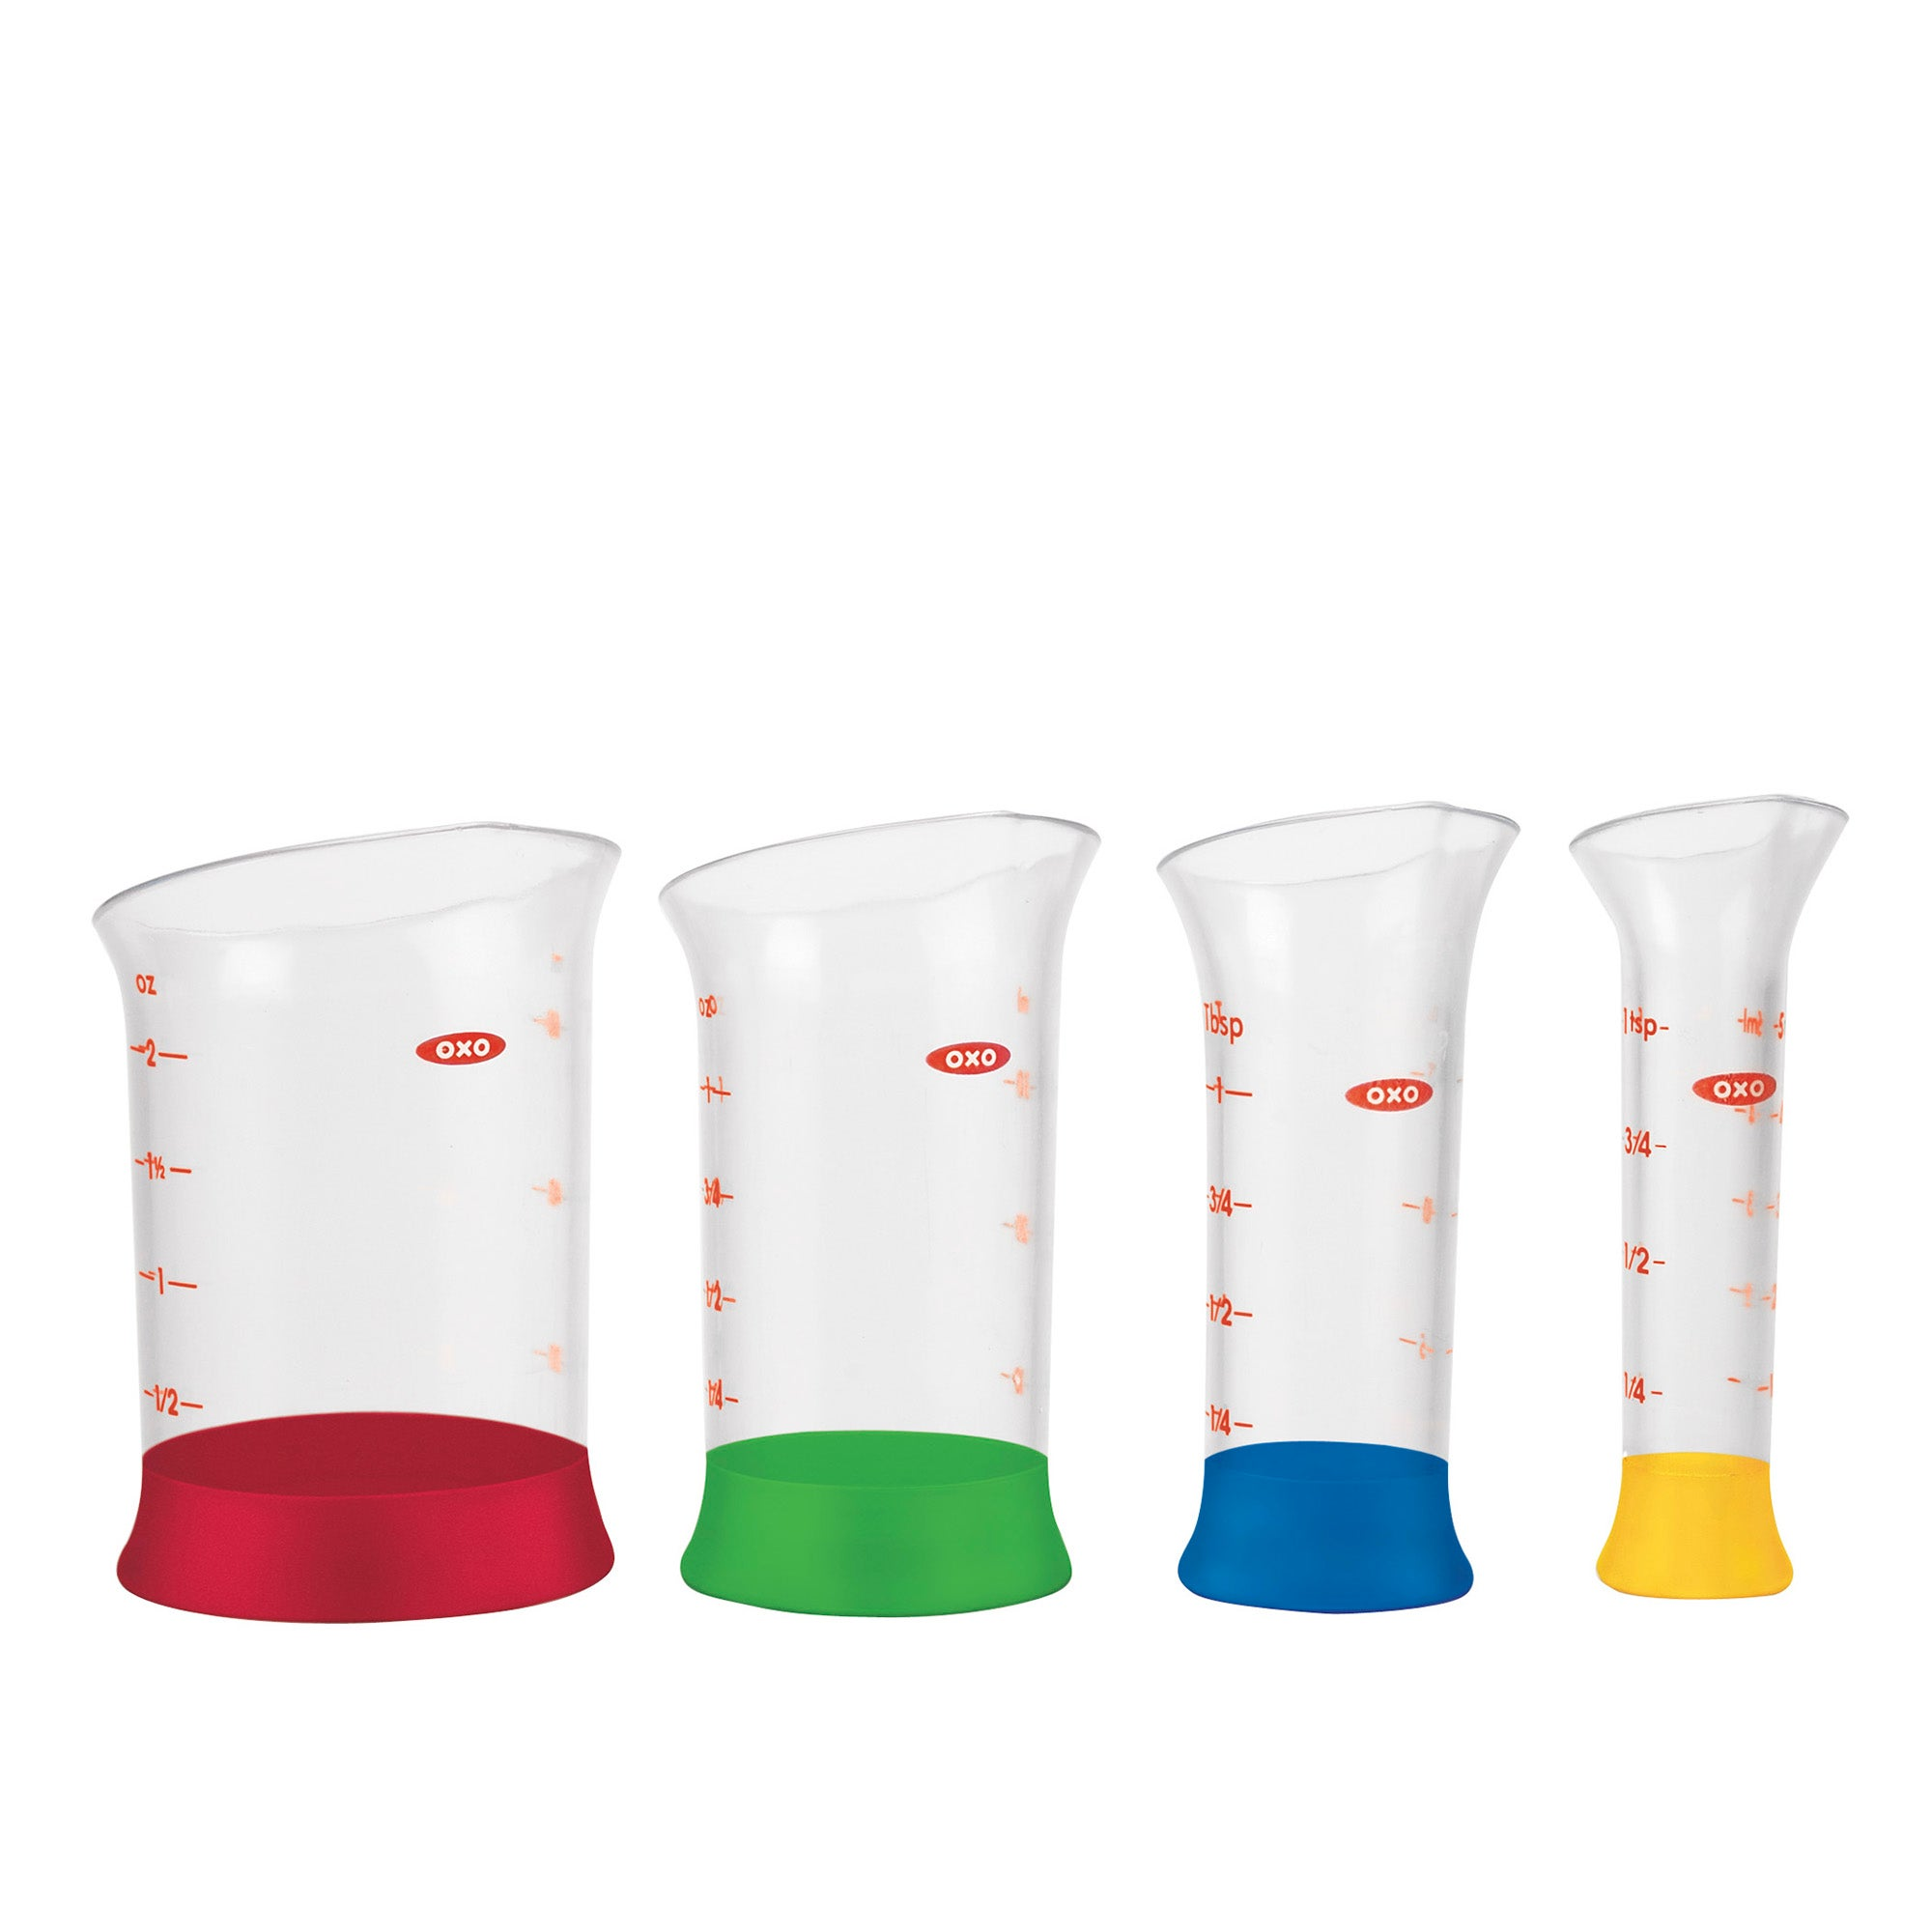 OXO Good Grips Utensil Collection